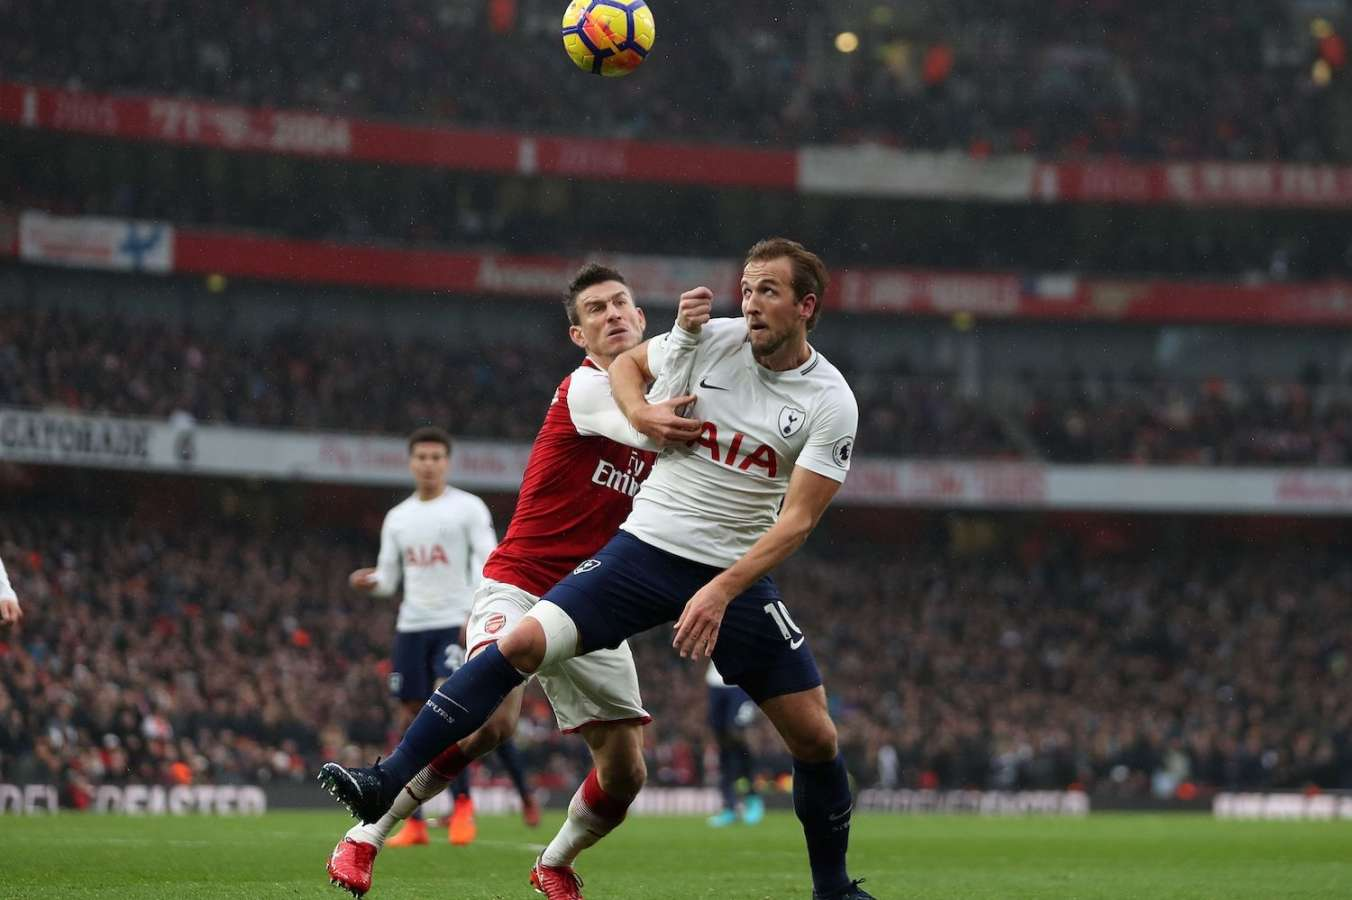 TOTTENHAM star Jan Vertonghen has revealed how he came close to joining north London rivals Arsenal